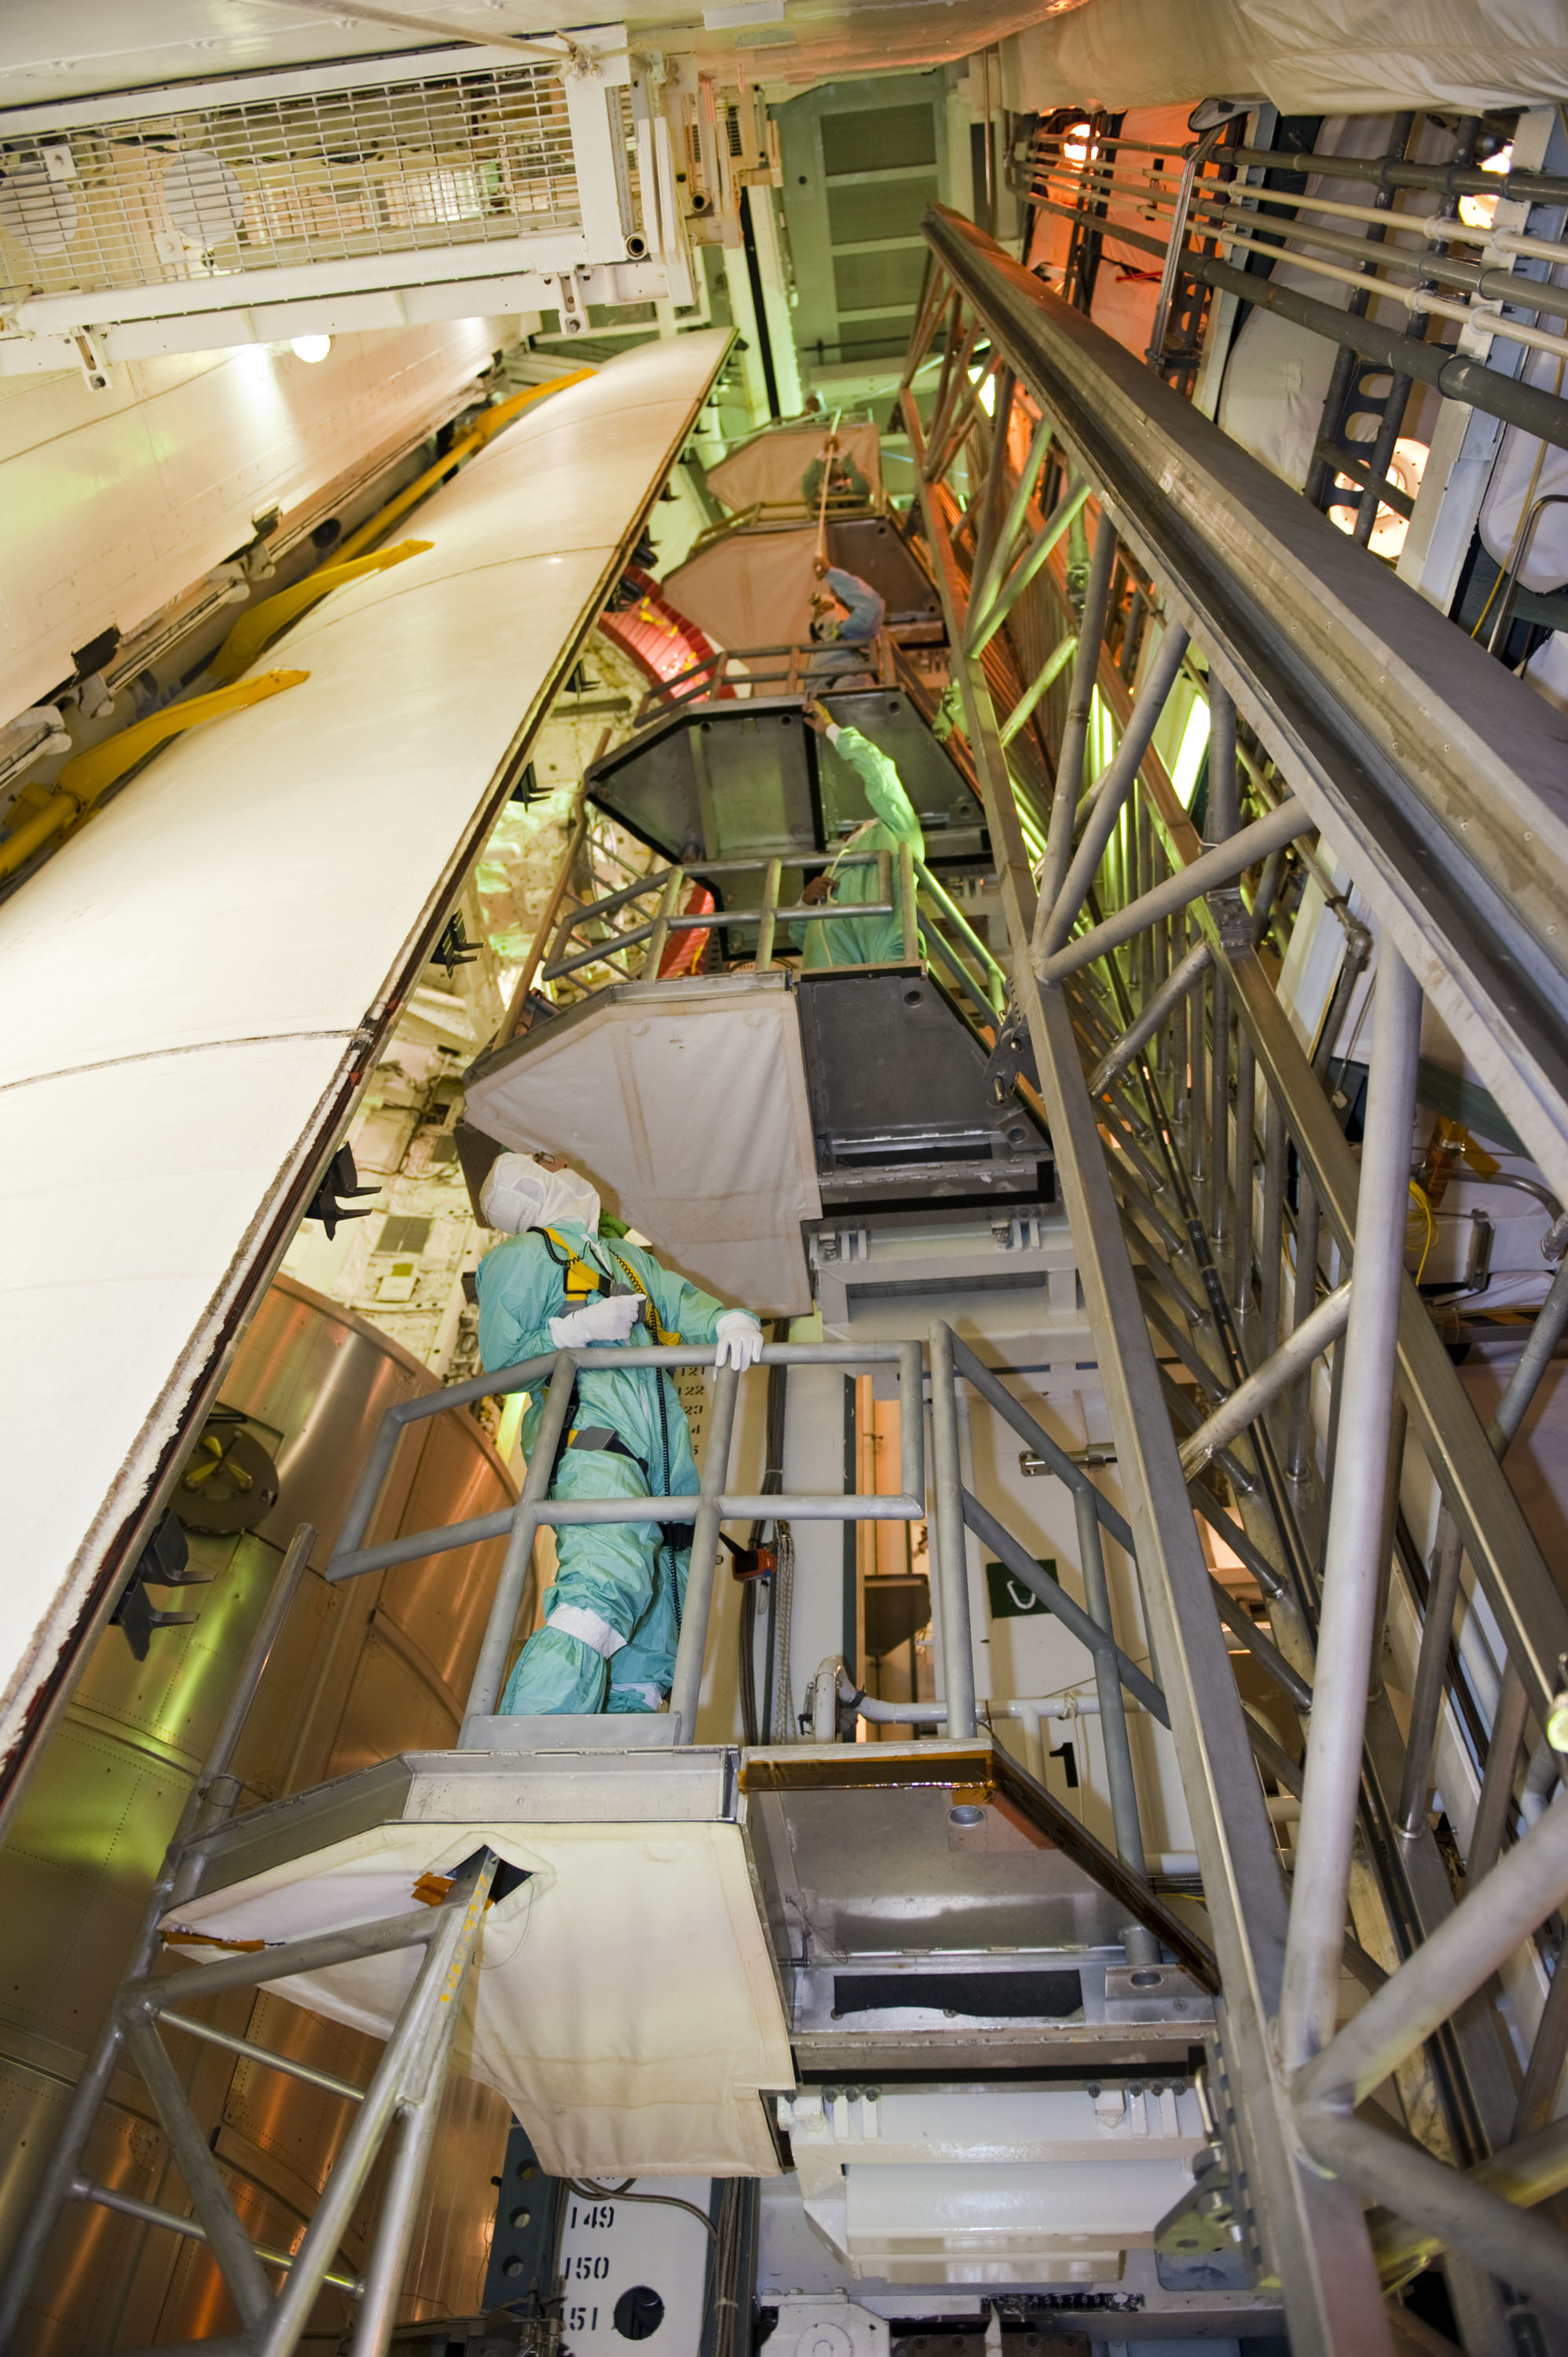 space shuttle mission length - photo #47